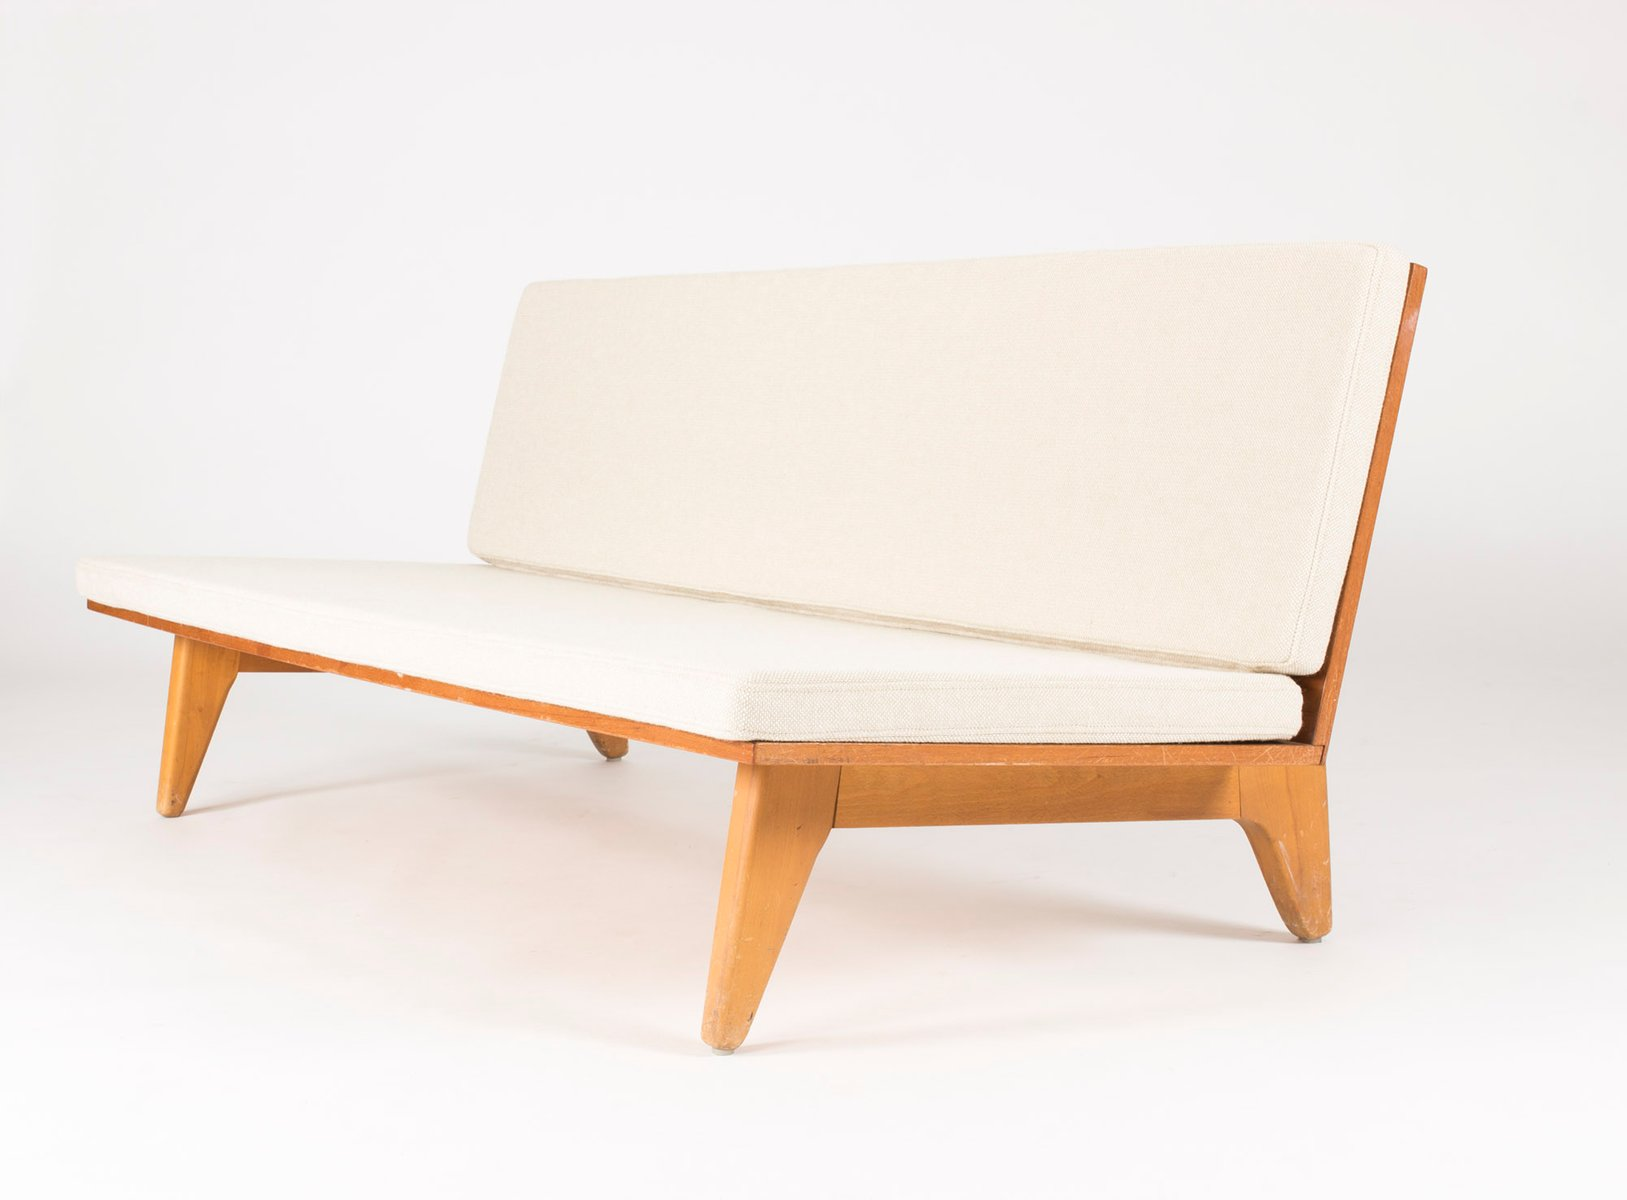 Teak Sofa by Gustaf Hiort af Ornäs for Gösta Westerberg, 1950s for sale at Pamono